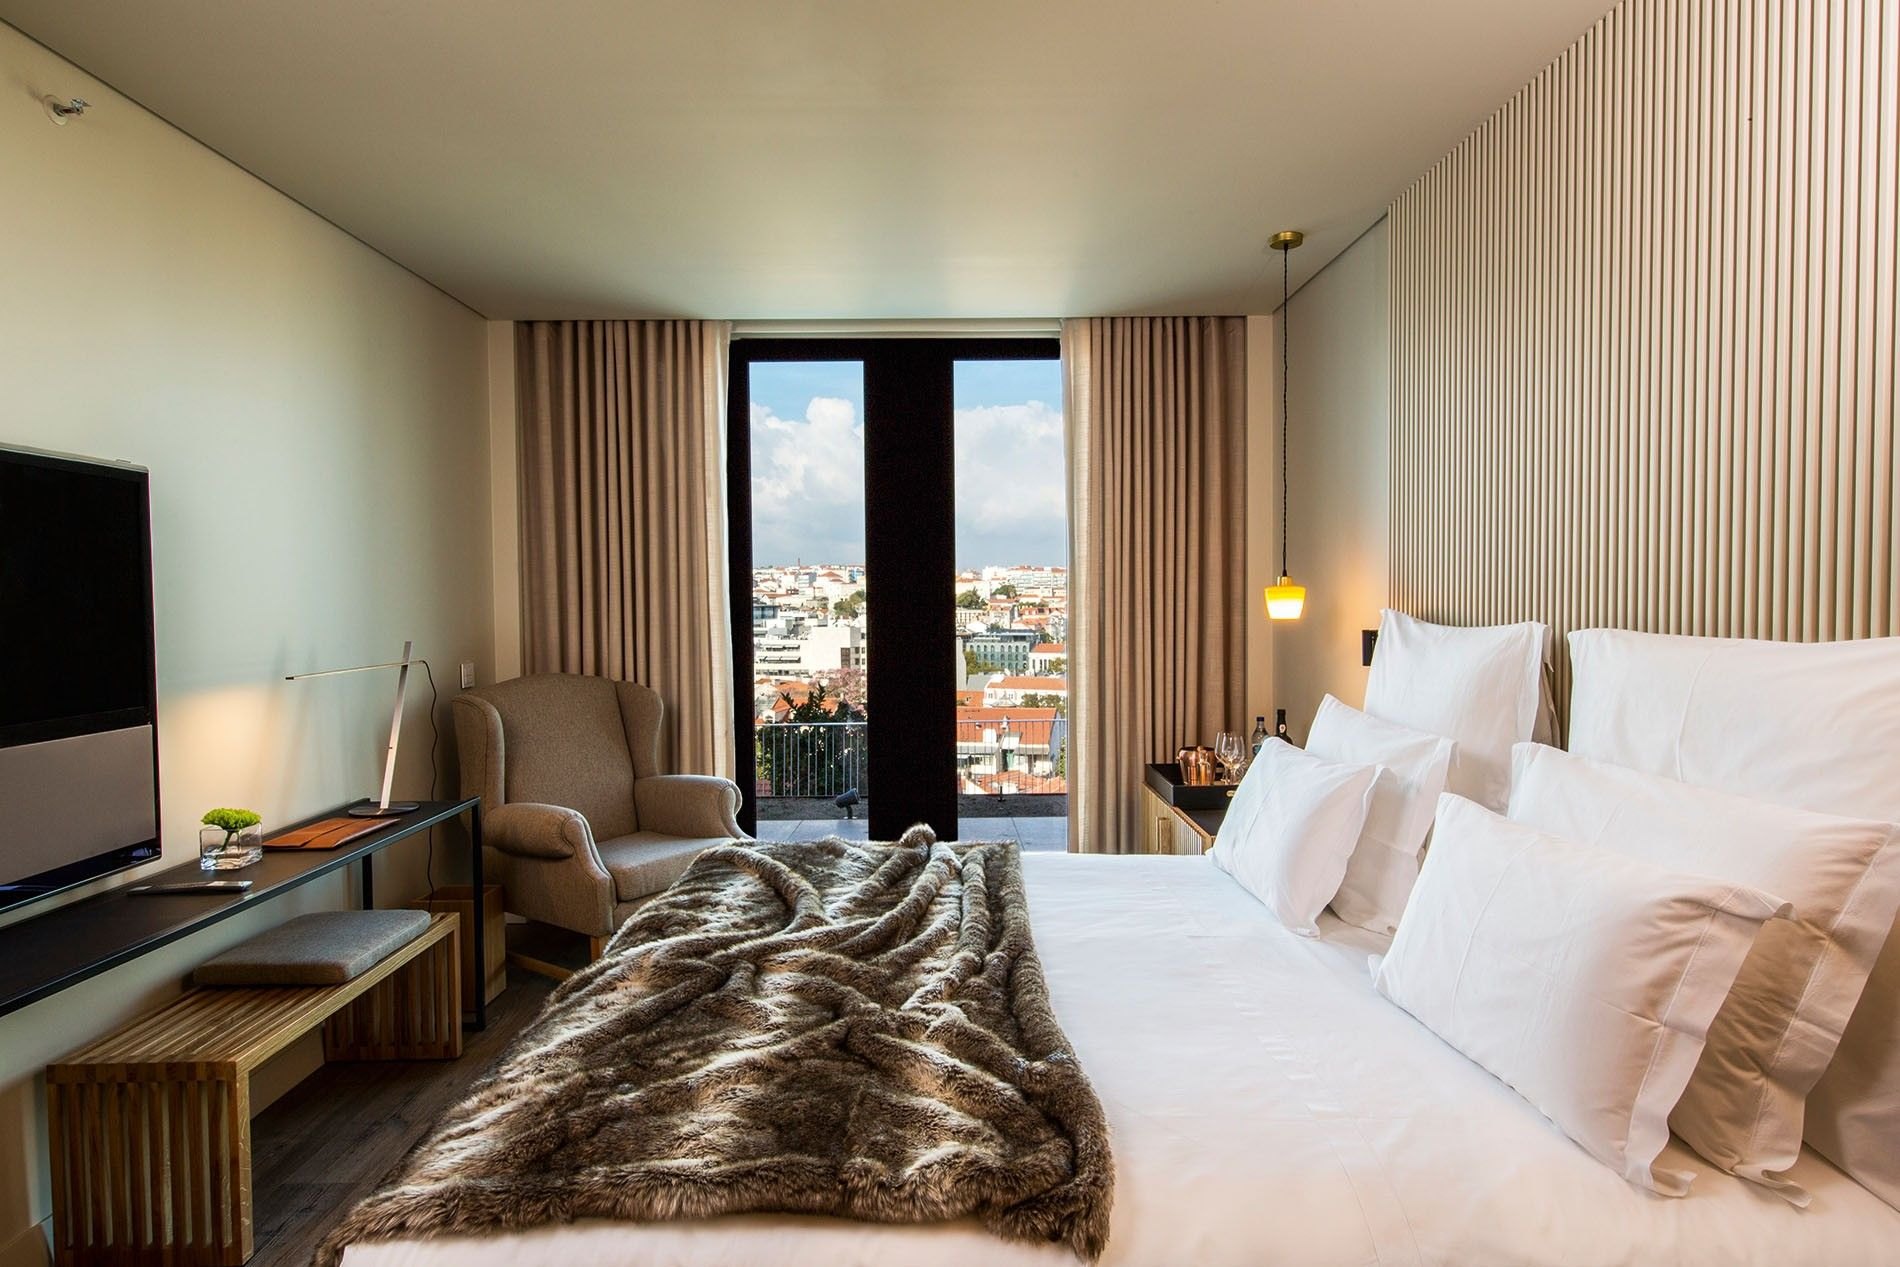 Ultimate hotel guide: where to stay in Lisbon